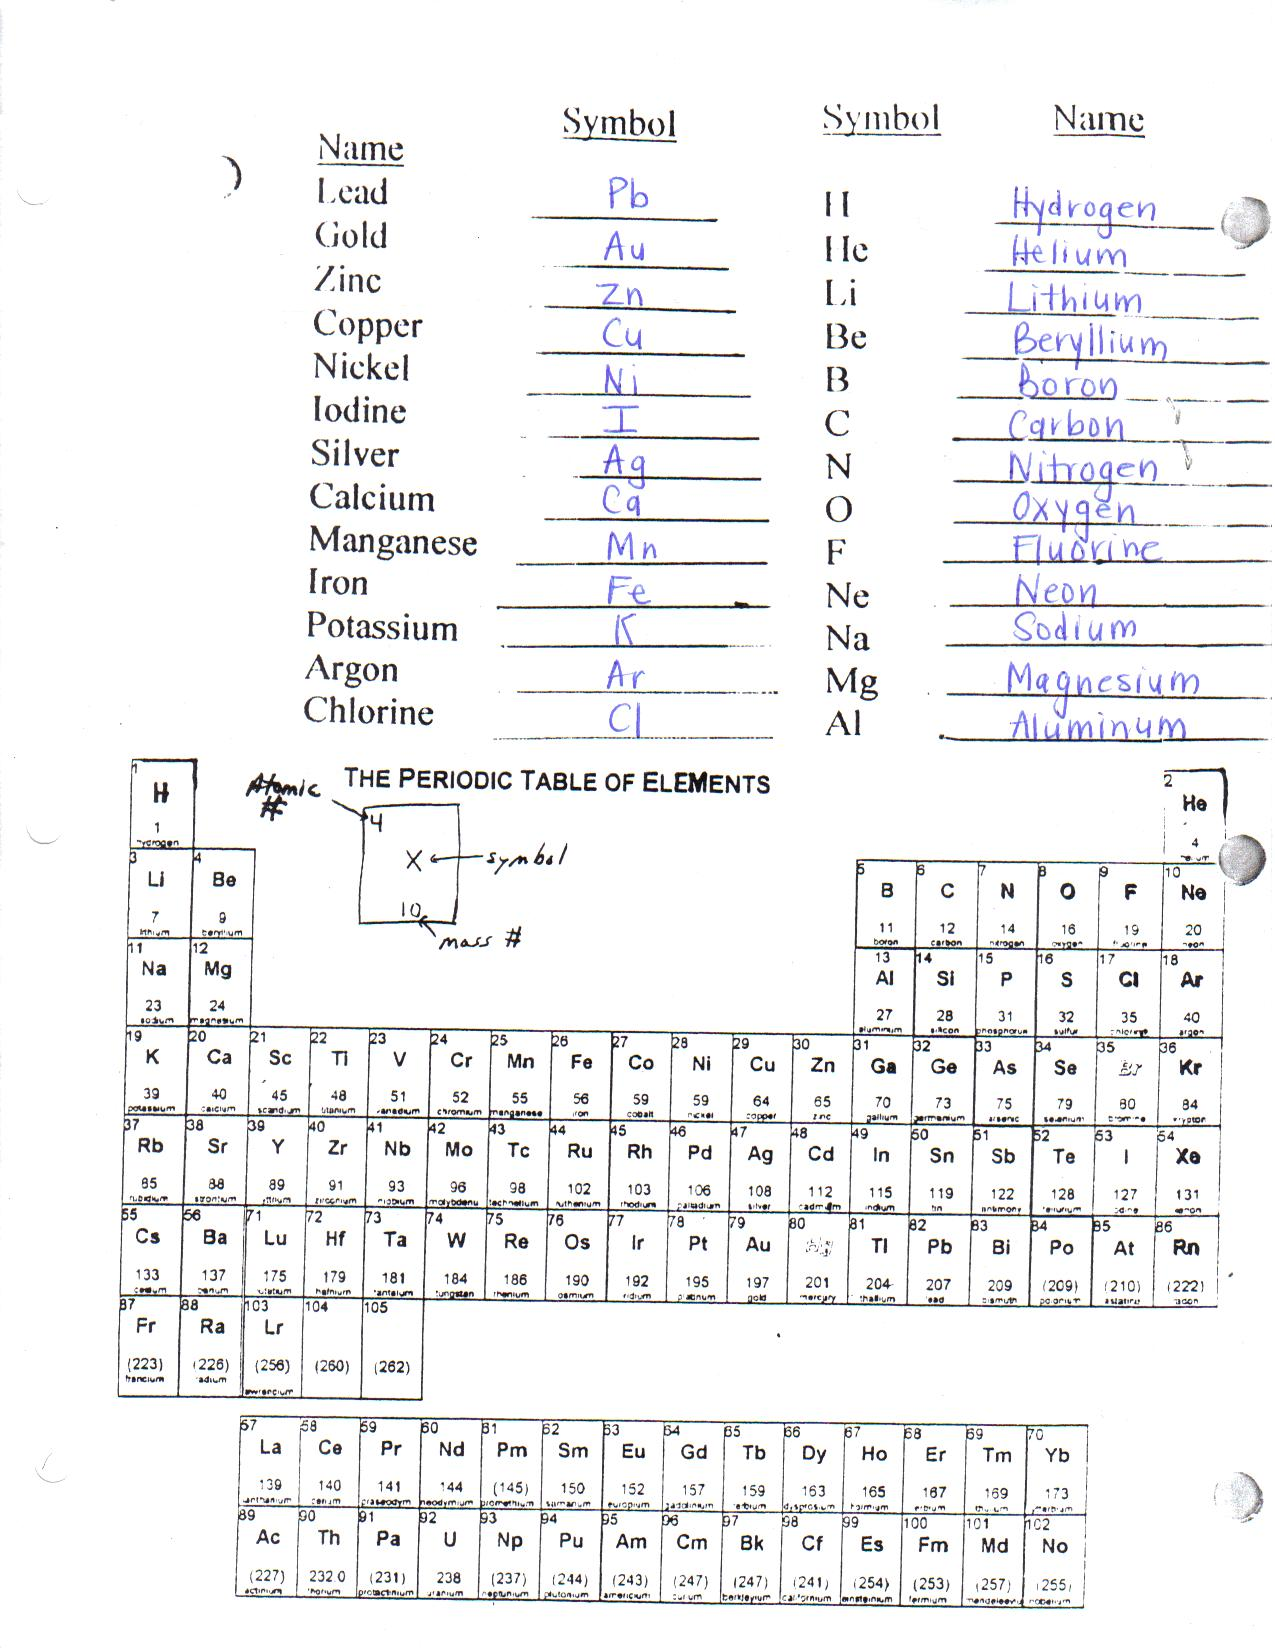 Toxic science symbol name practice 1 2 gamestrikefo Choice Image